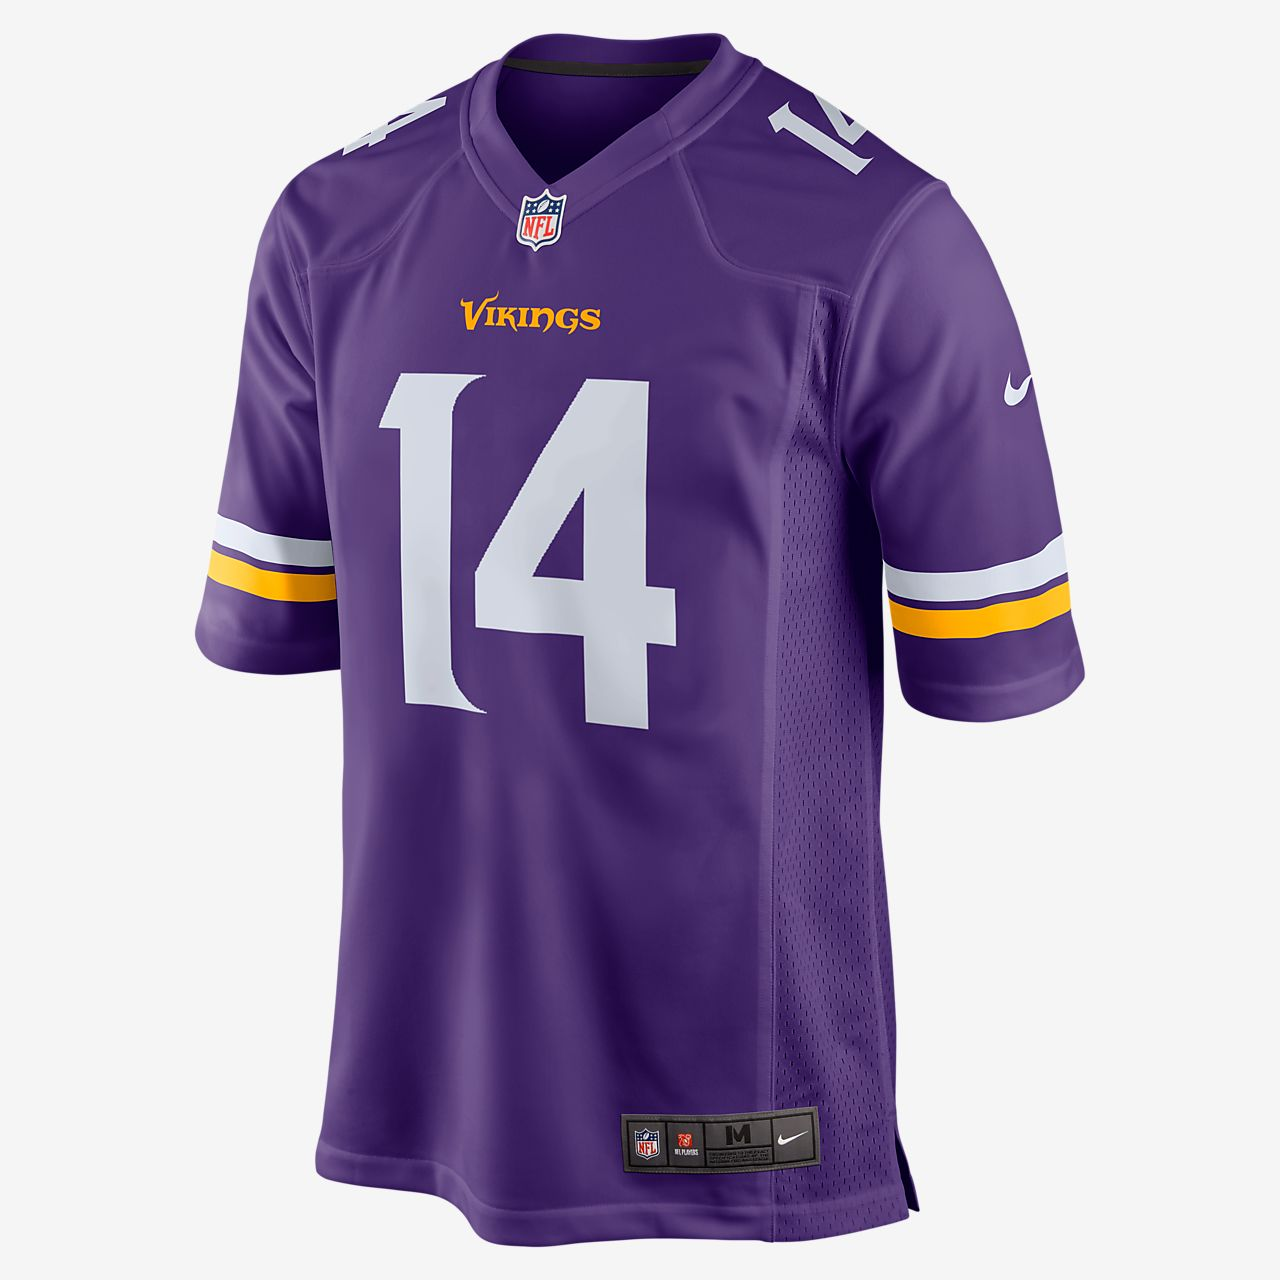 a6b847be18d NFL Minnesota Vikings (Stefon Diggs) Men s Football Home Game Jersey ...